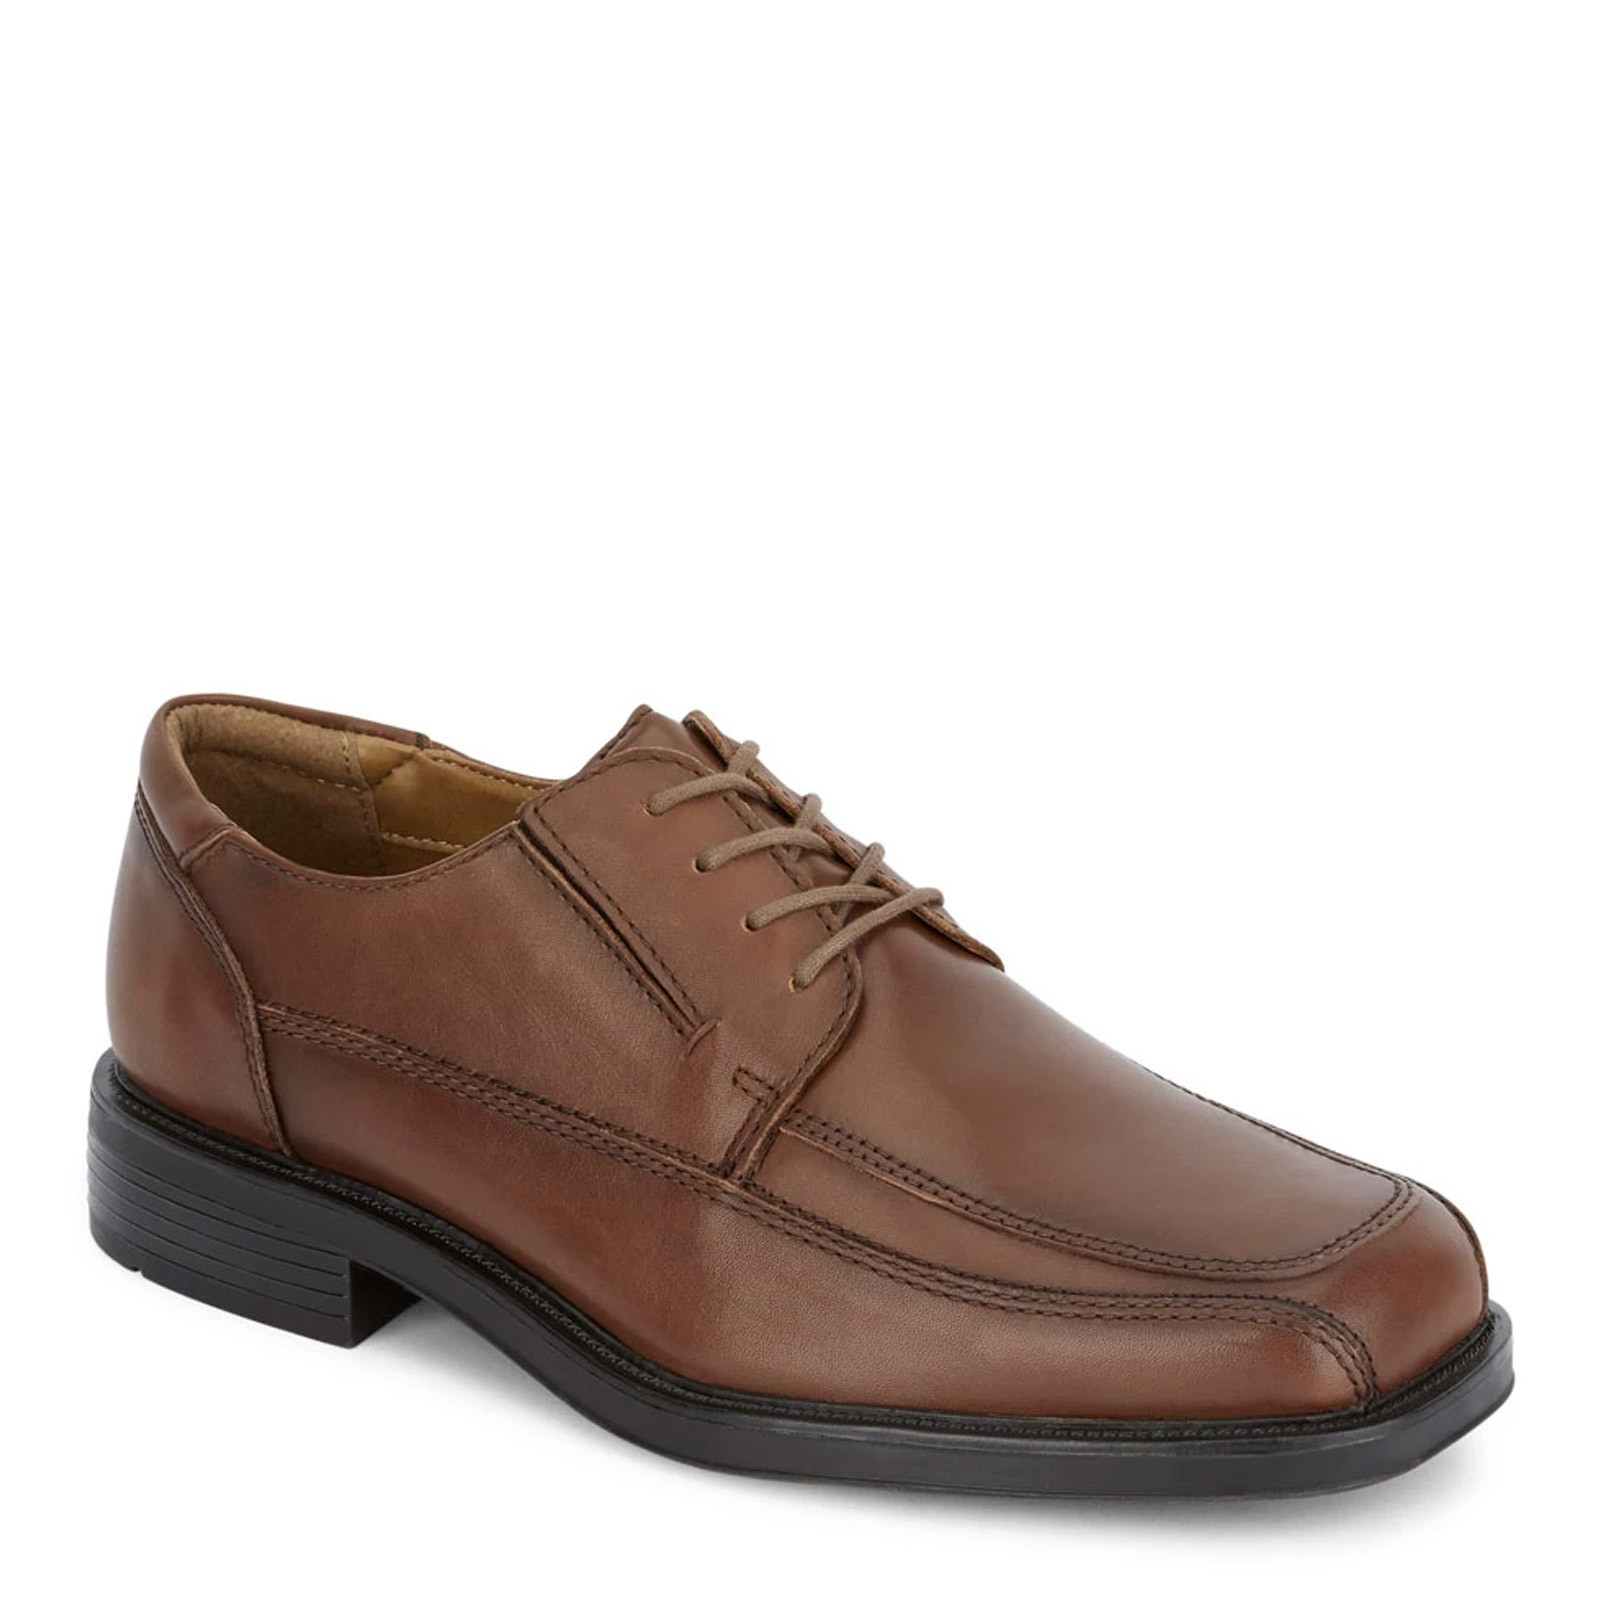 Men's Dockers, Perspective Lace up Shoes